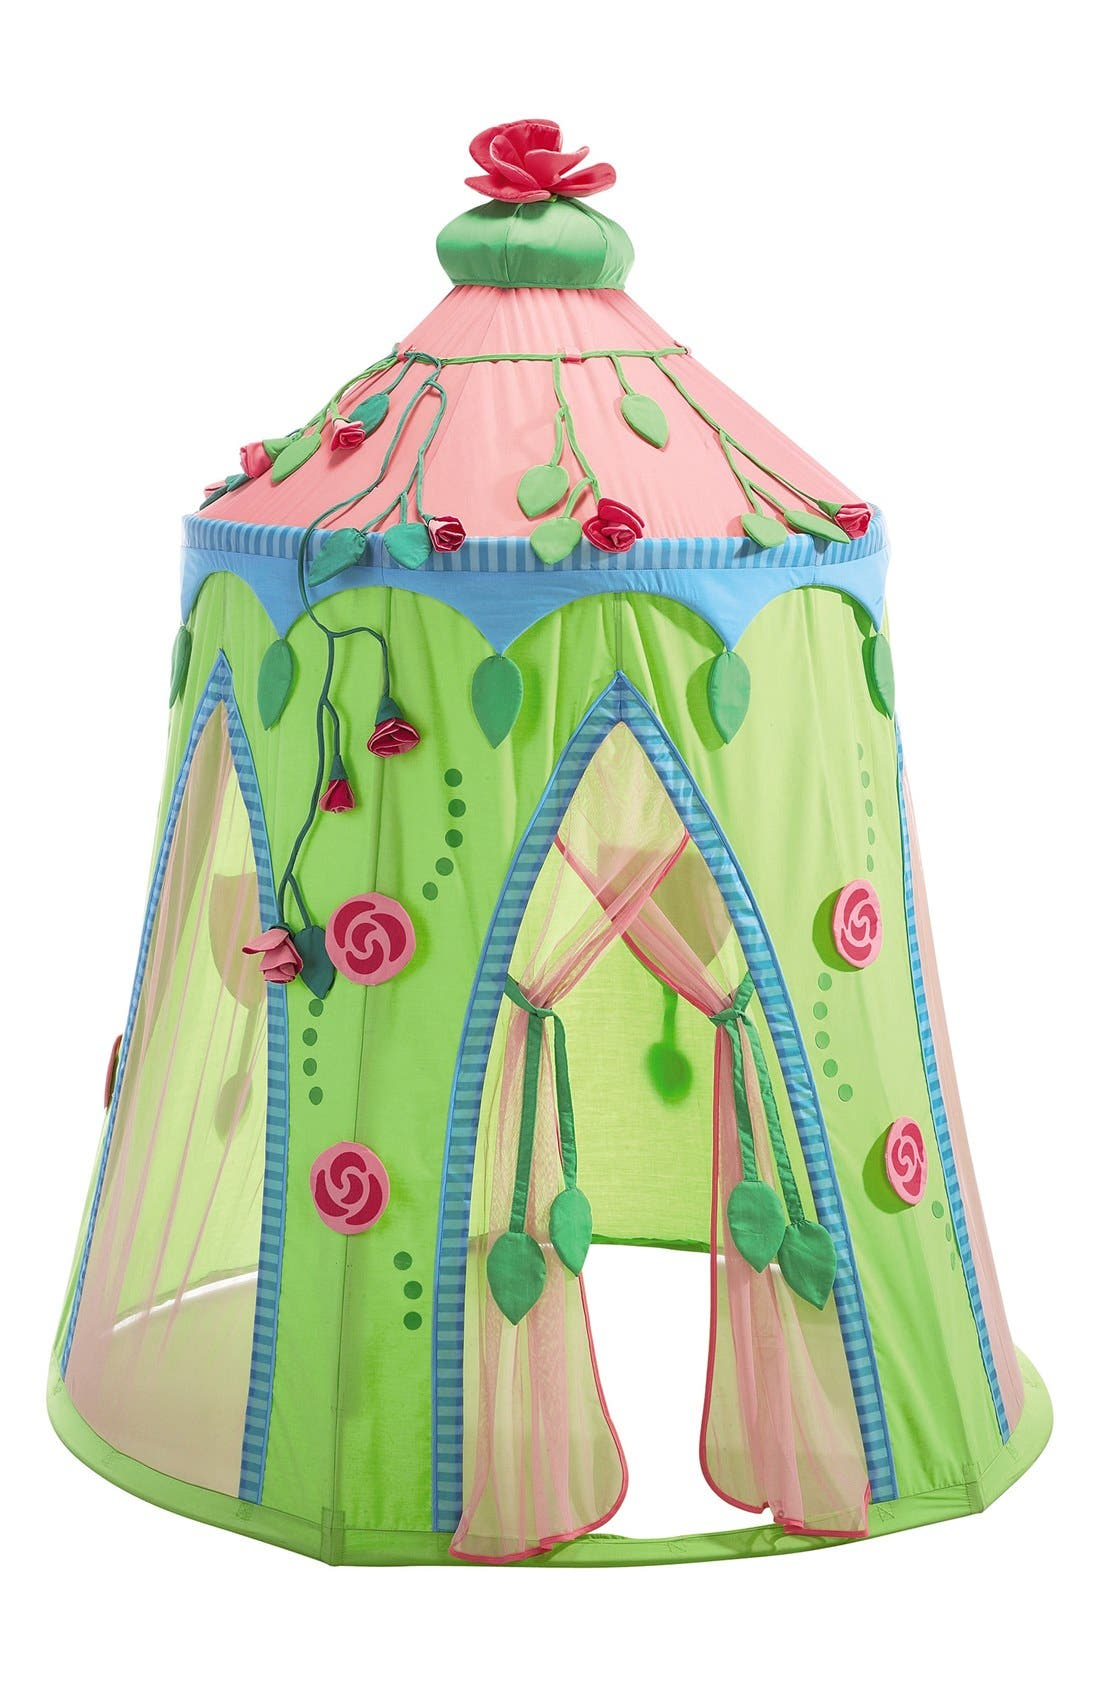 'Rose Fairy' Play Tent,                         Main,                         color, Pink